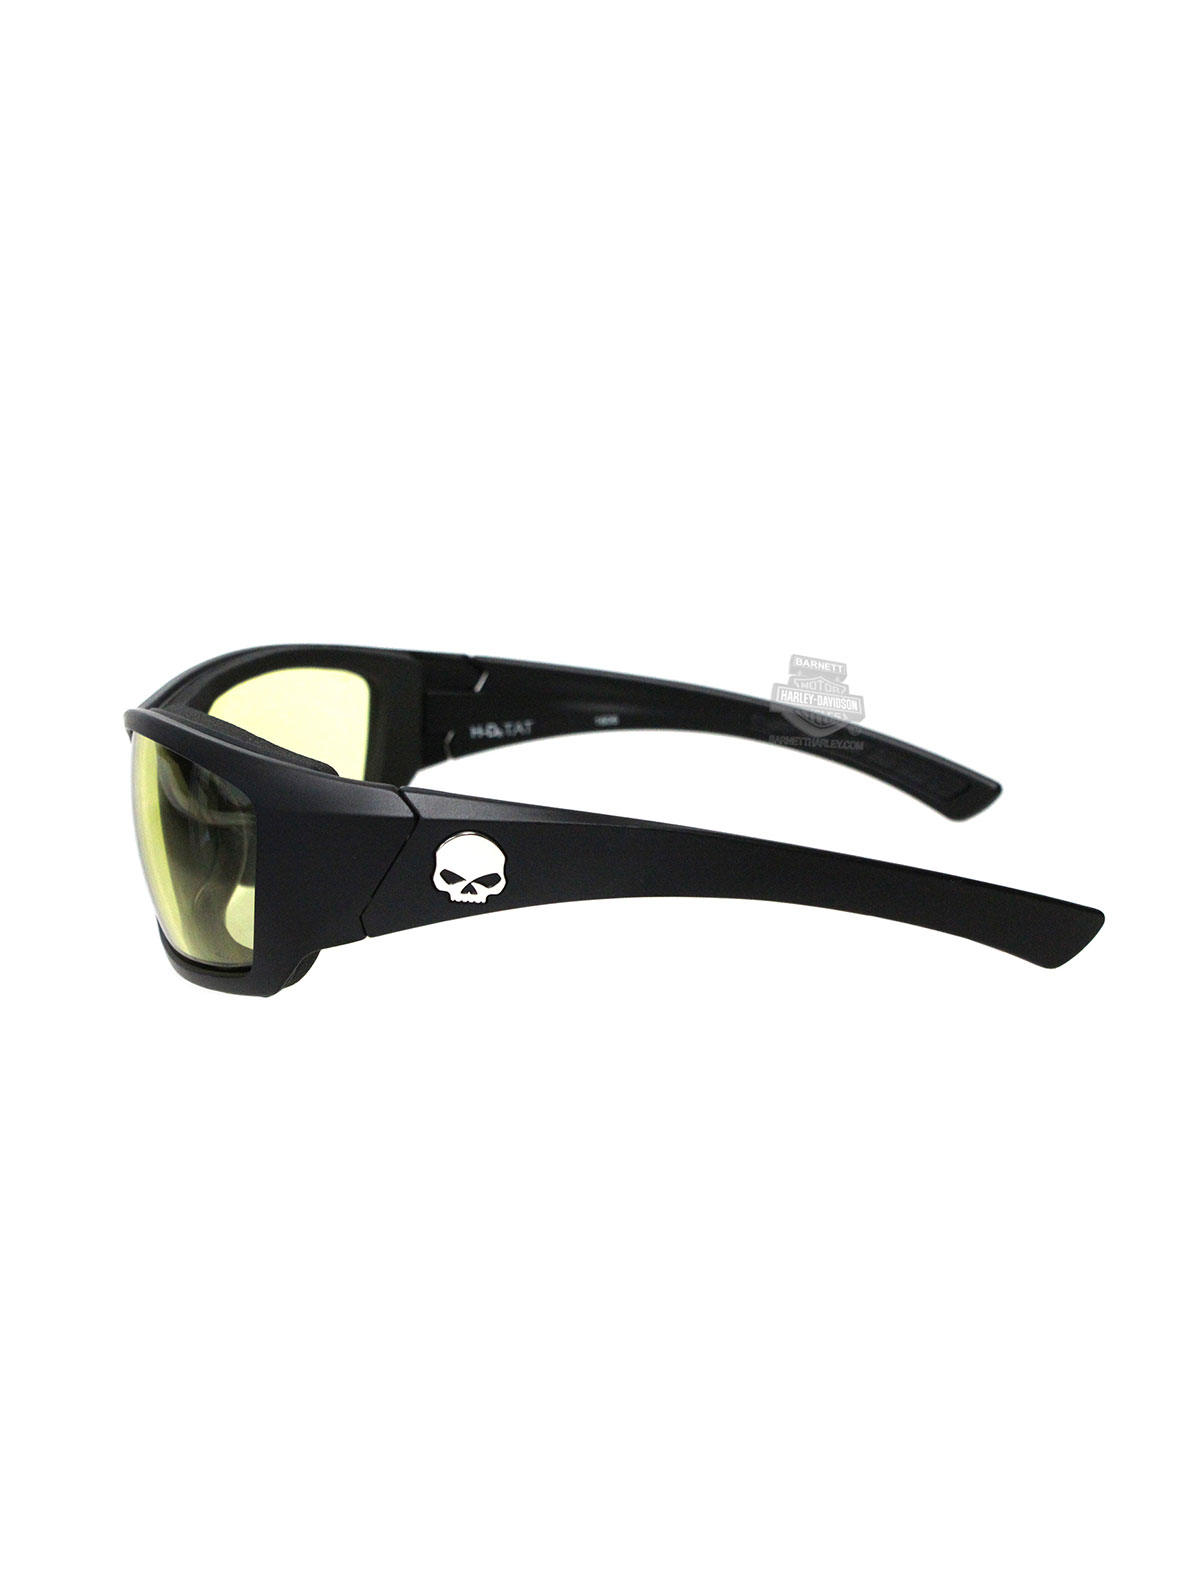 3839d4fbbe6 Harley-Davidson® HD Tat Yellow Lens in a Matte Black Sunglasses or ...